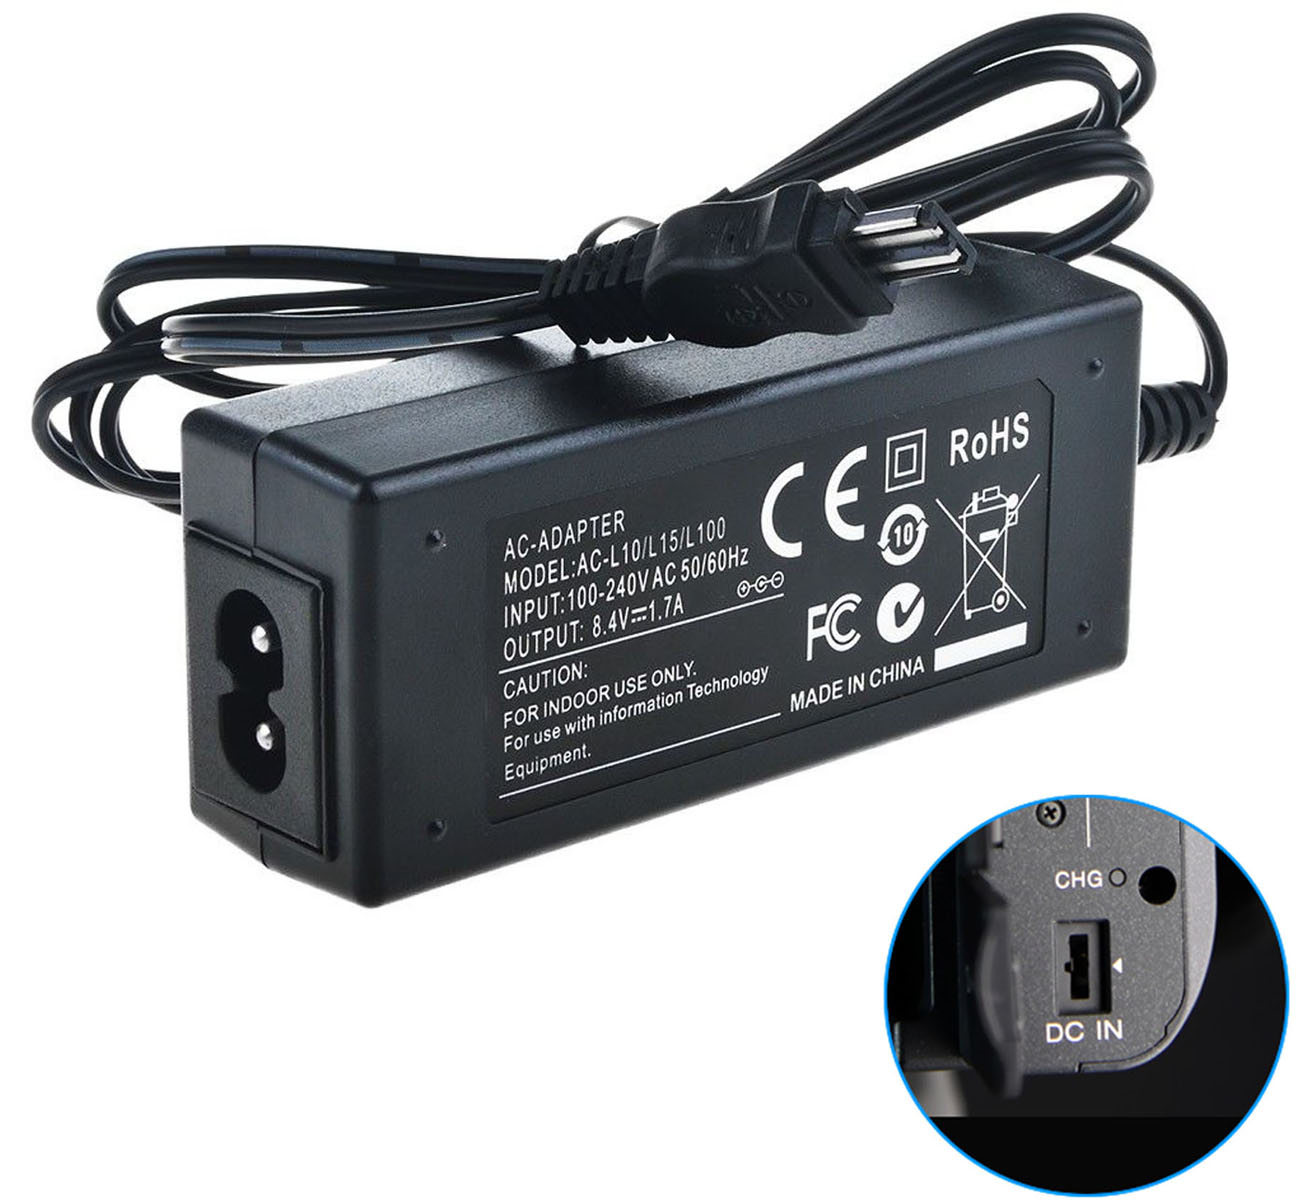 CCD-TRV338 USB Travel Battery Charger for Sony CCD-TRV328 CCD-TRV338E Handycam Camcorder CCD-TRV328E